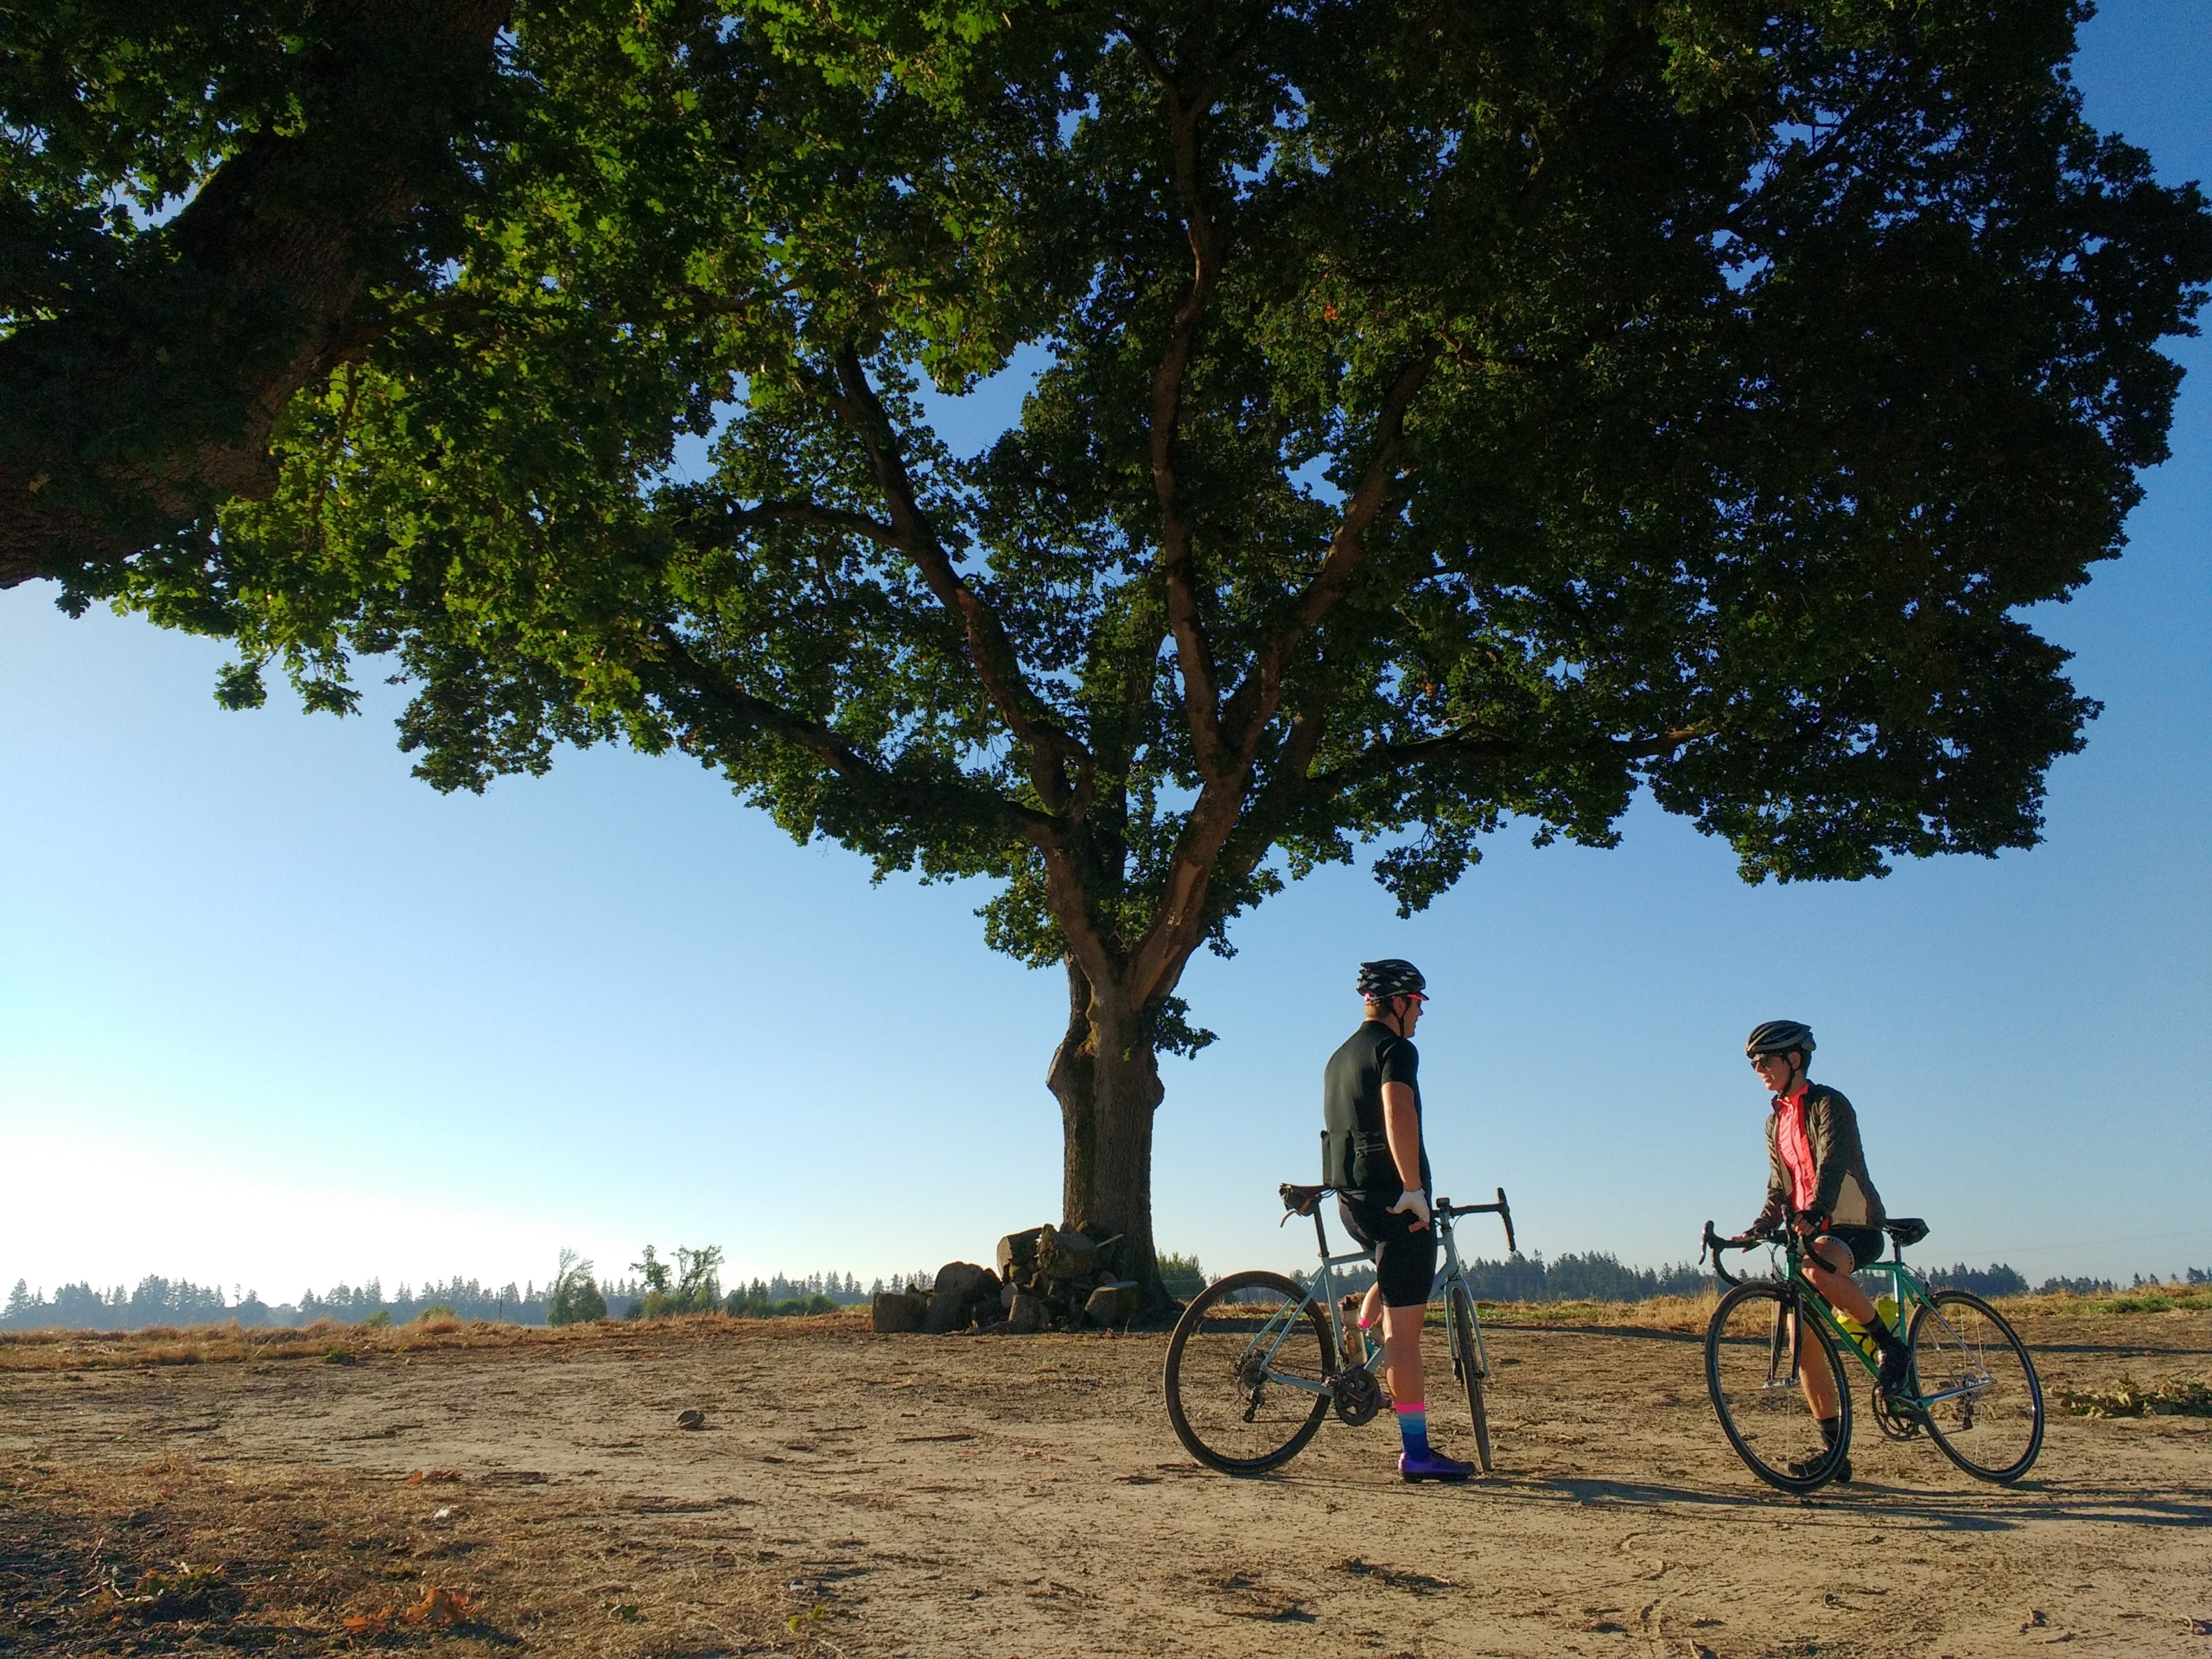 Two bicyclists under a large oak tree